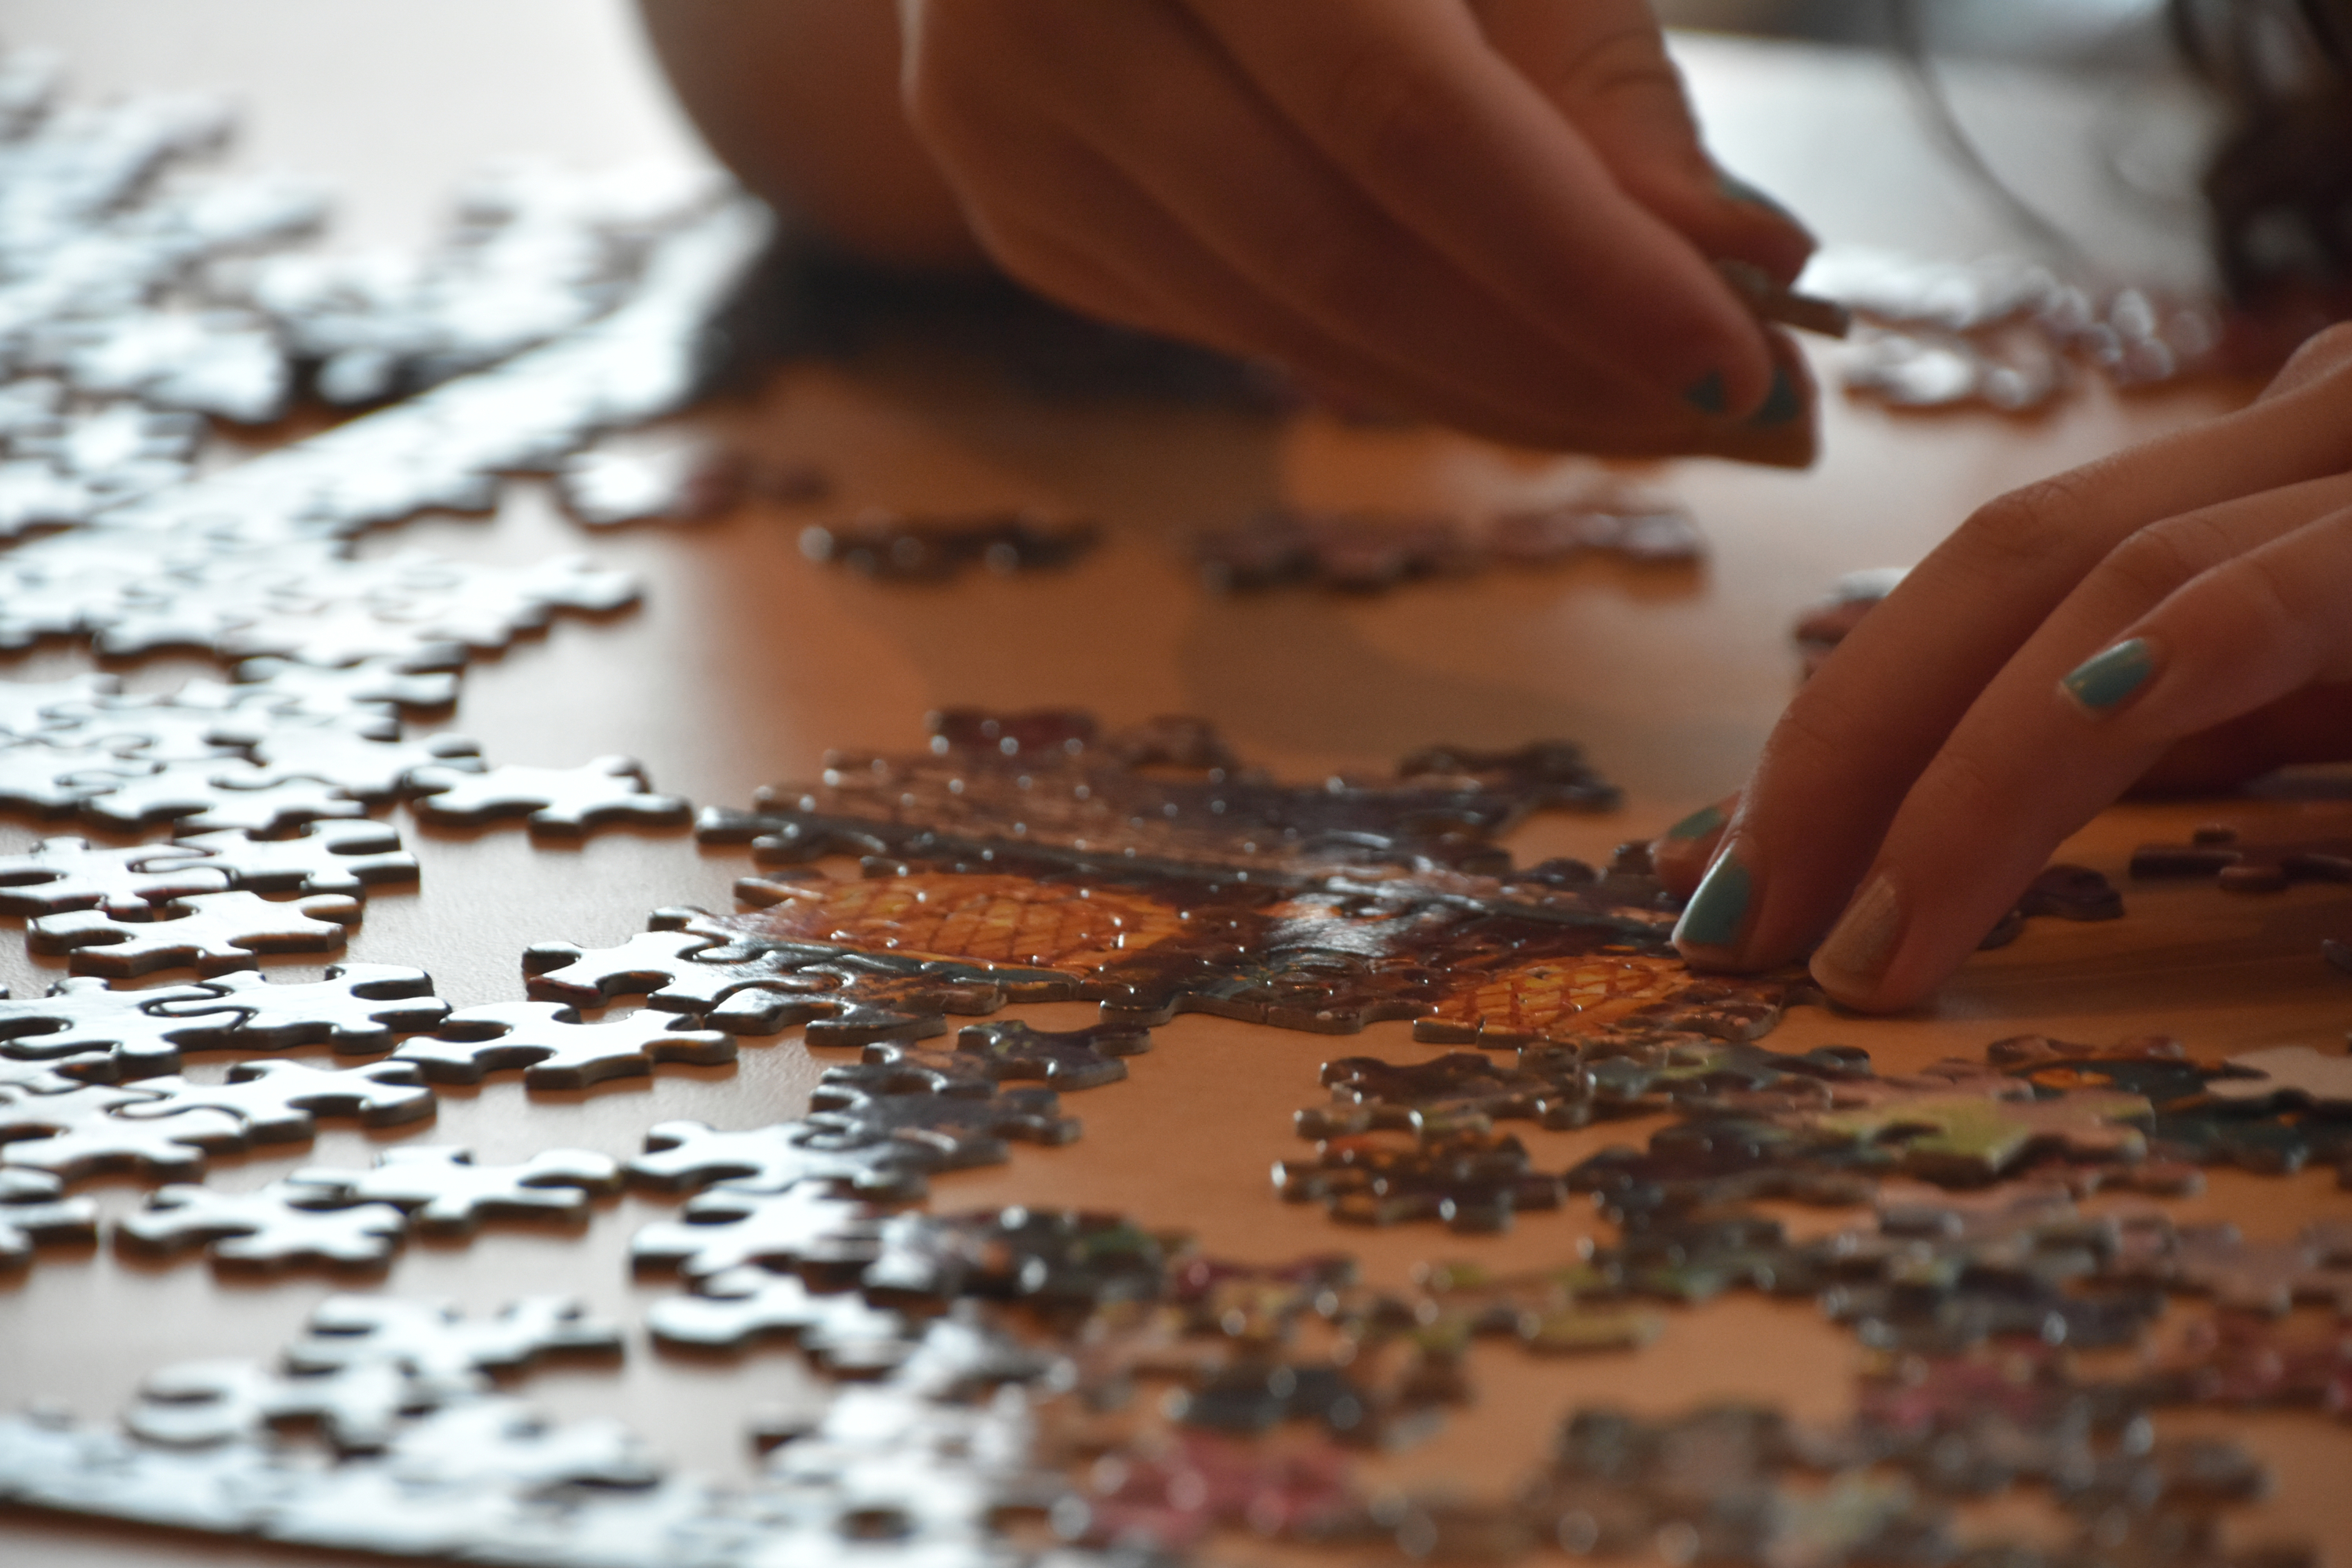 Jigsaw puzzles are having a moment, but good luck finding one